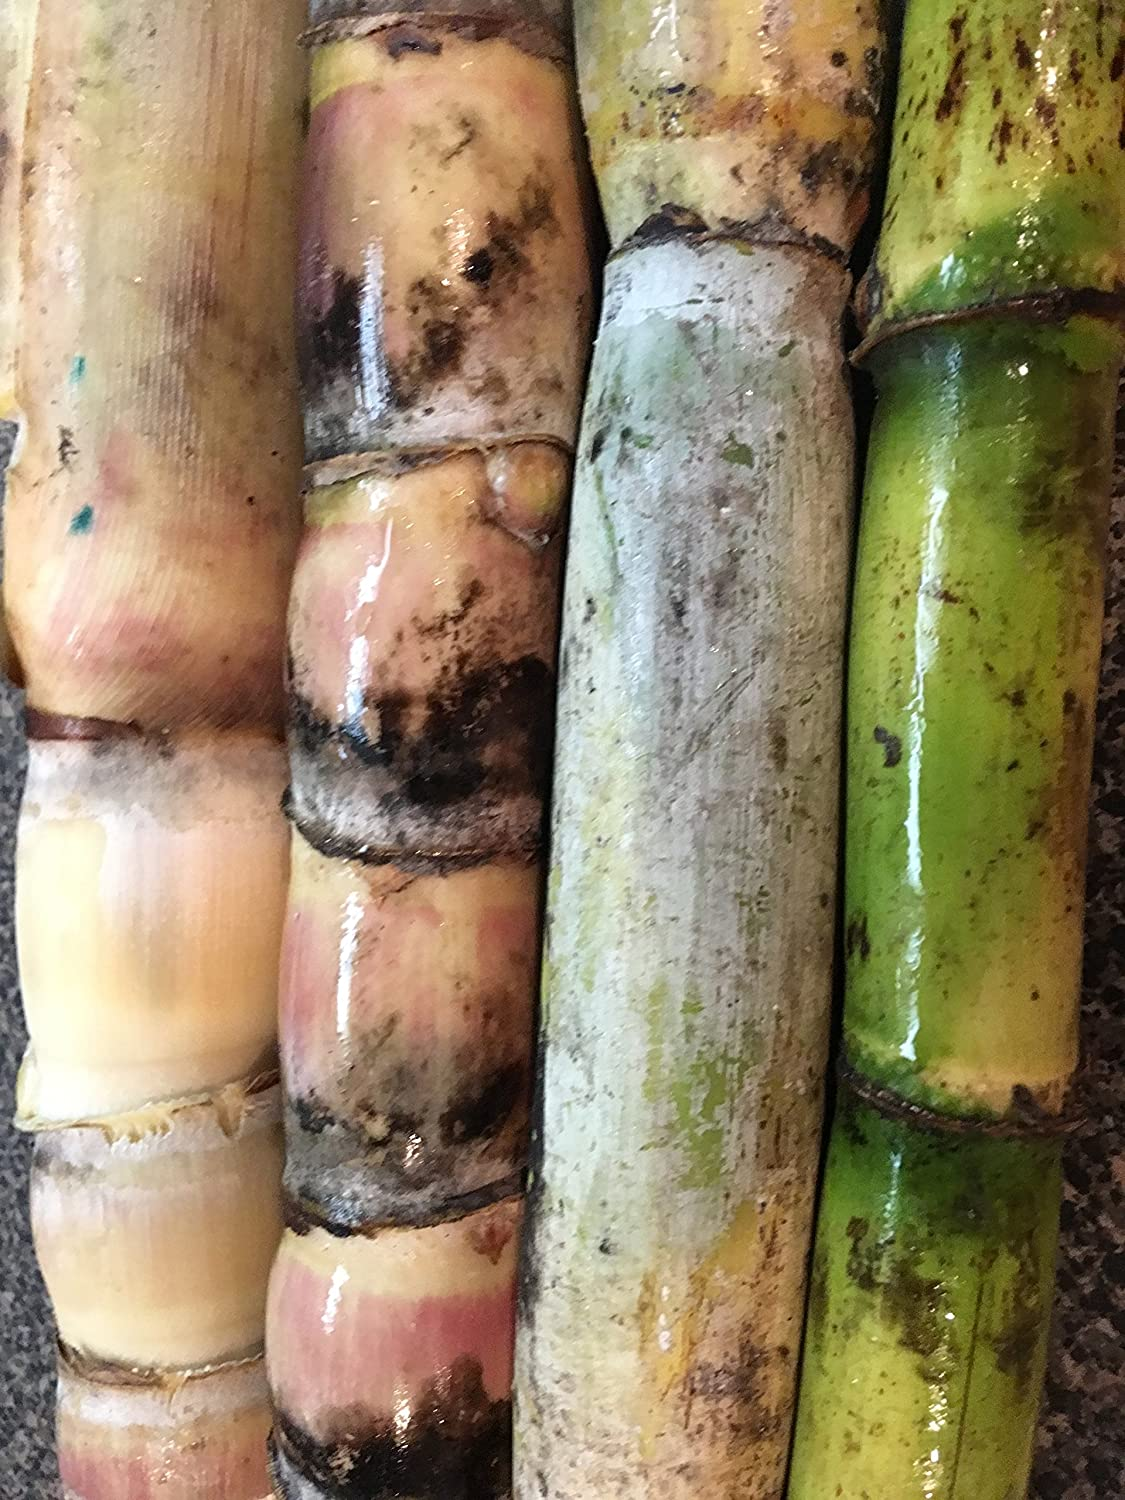 Sugarcane Plants Varieties of Green/Black-Perennial Organic Sugar Cane 6 Sticks/Sprouts For Planting. Ornamental Grass Raw Sugar Cane -Canne a Sucre-2 in Each Variety